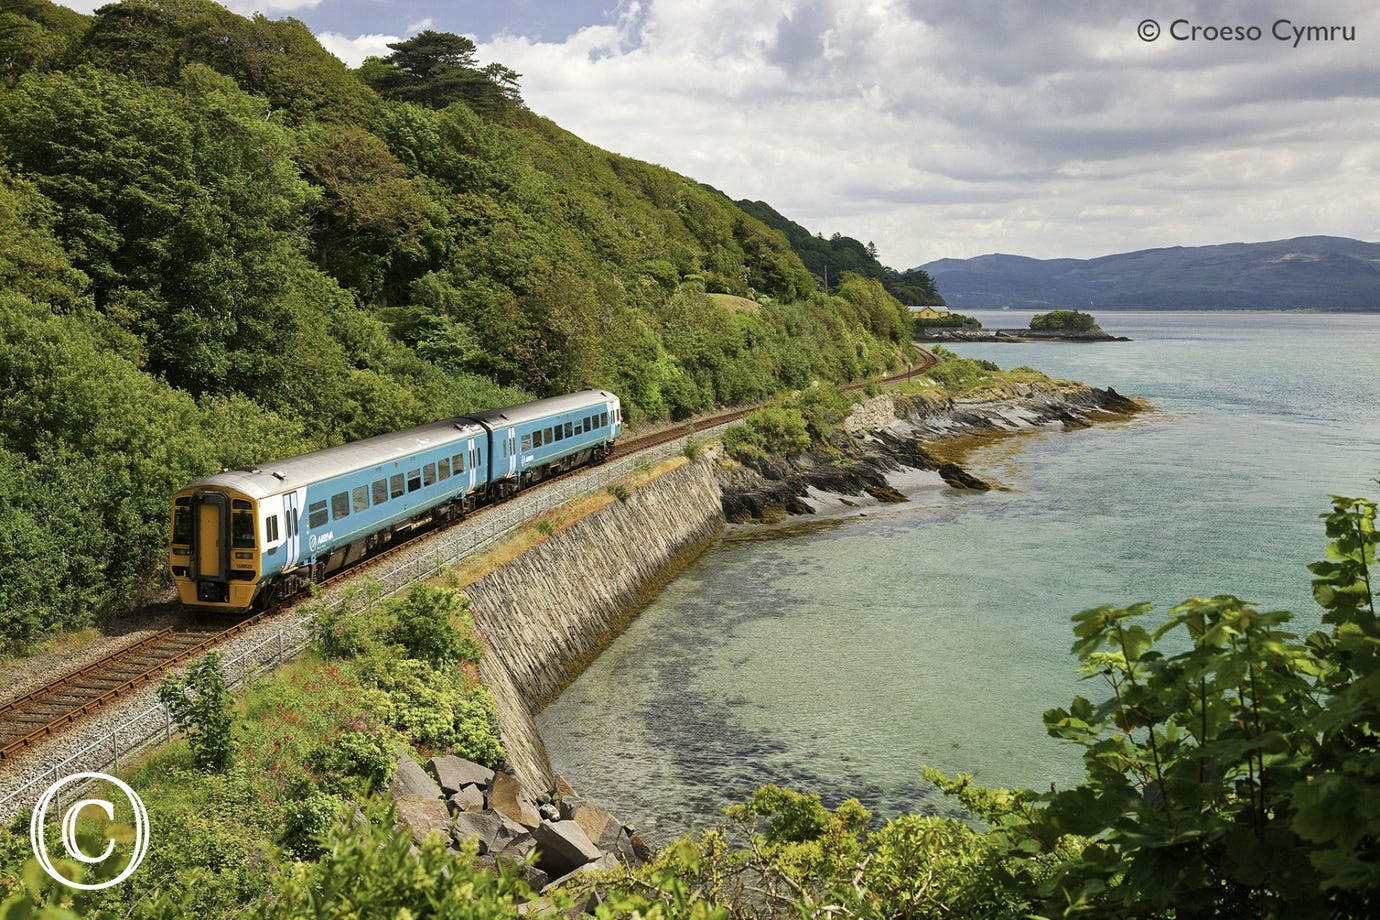 Jump on the train and enjoy one of the most scenic coastal train journeys in the world, all the way from Machynlleth to Pwllheli